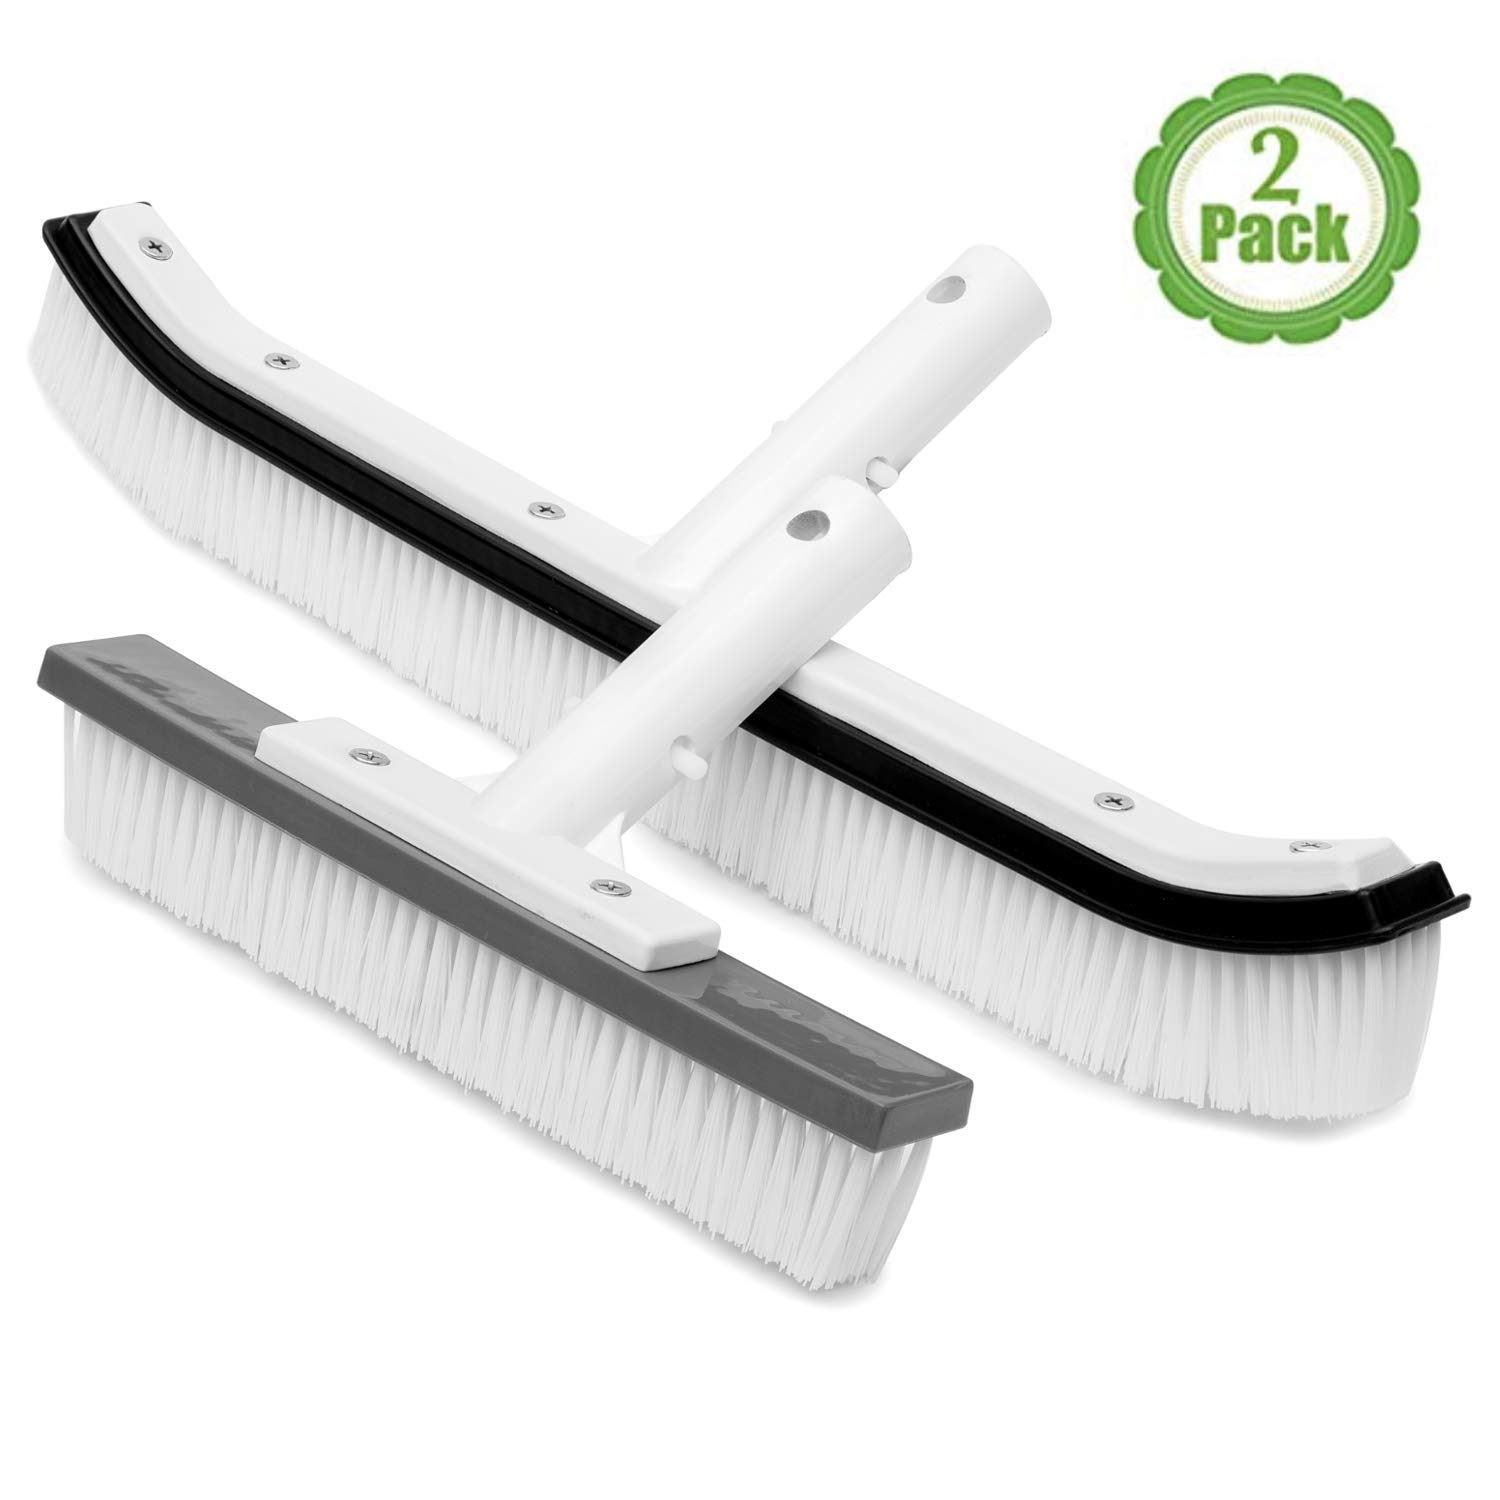 The Lazy Sharks Pool Cleaning Brush, Set of Two, Swimming Pool Brush Head for Cleaning Pool Walls, Cleaning Scrub Brush, Sizes 18 and 10 Inches by The Lazy Sharks